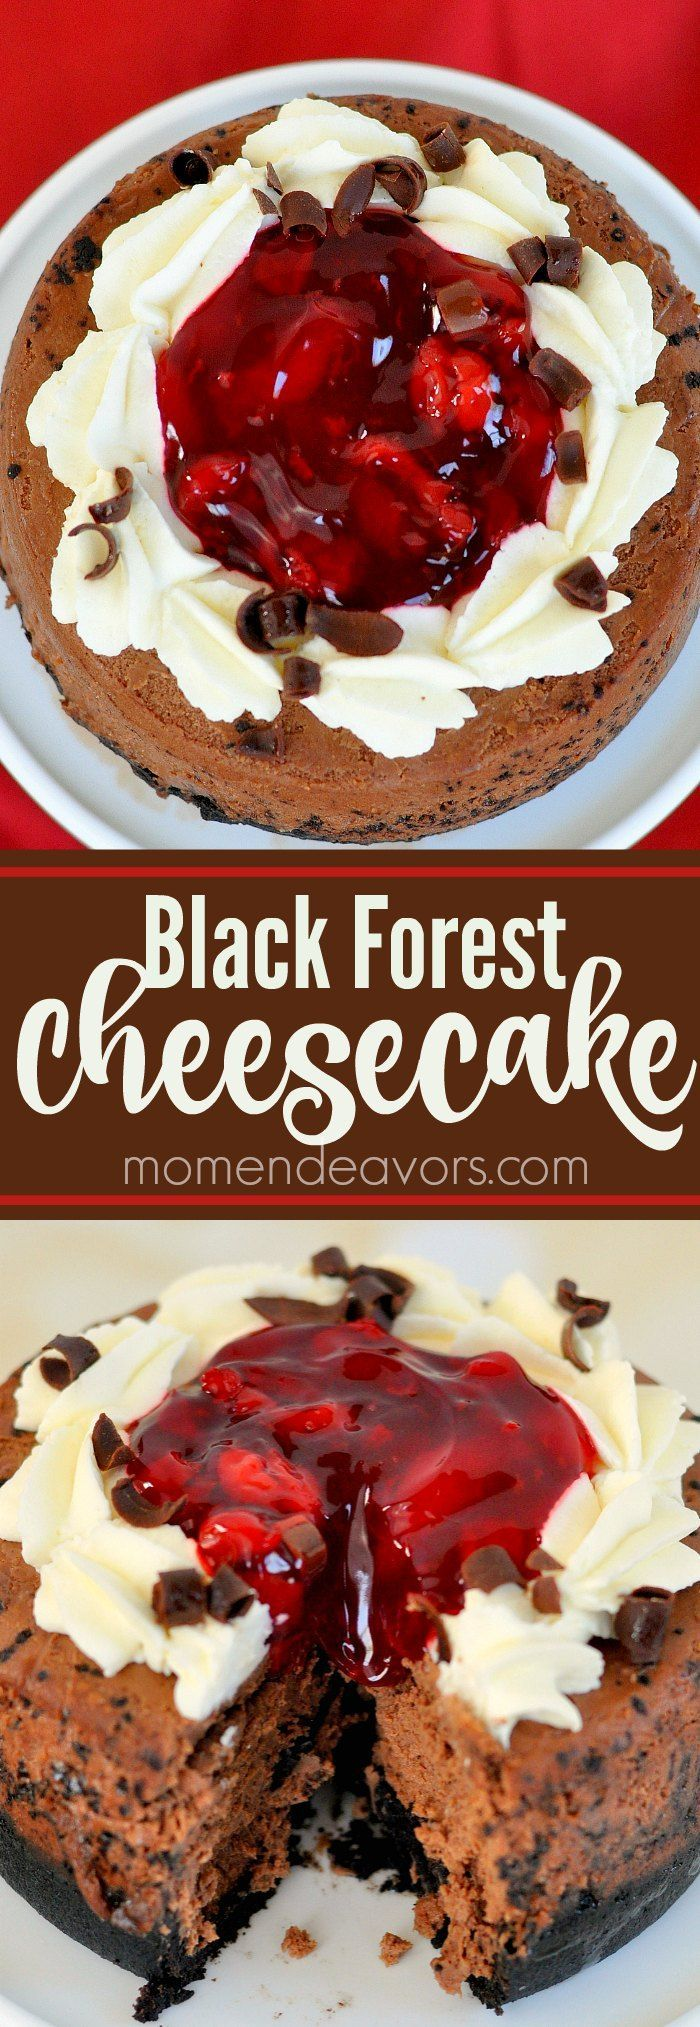 Black Forest Cheesecake - a delicious, decadent dessert.